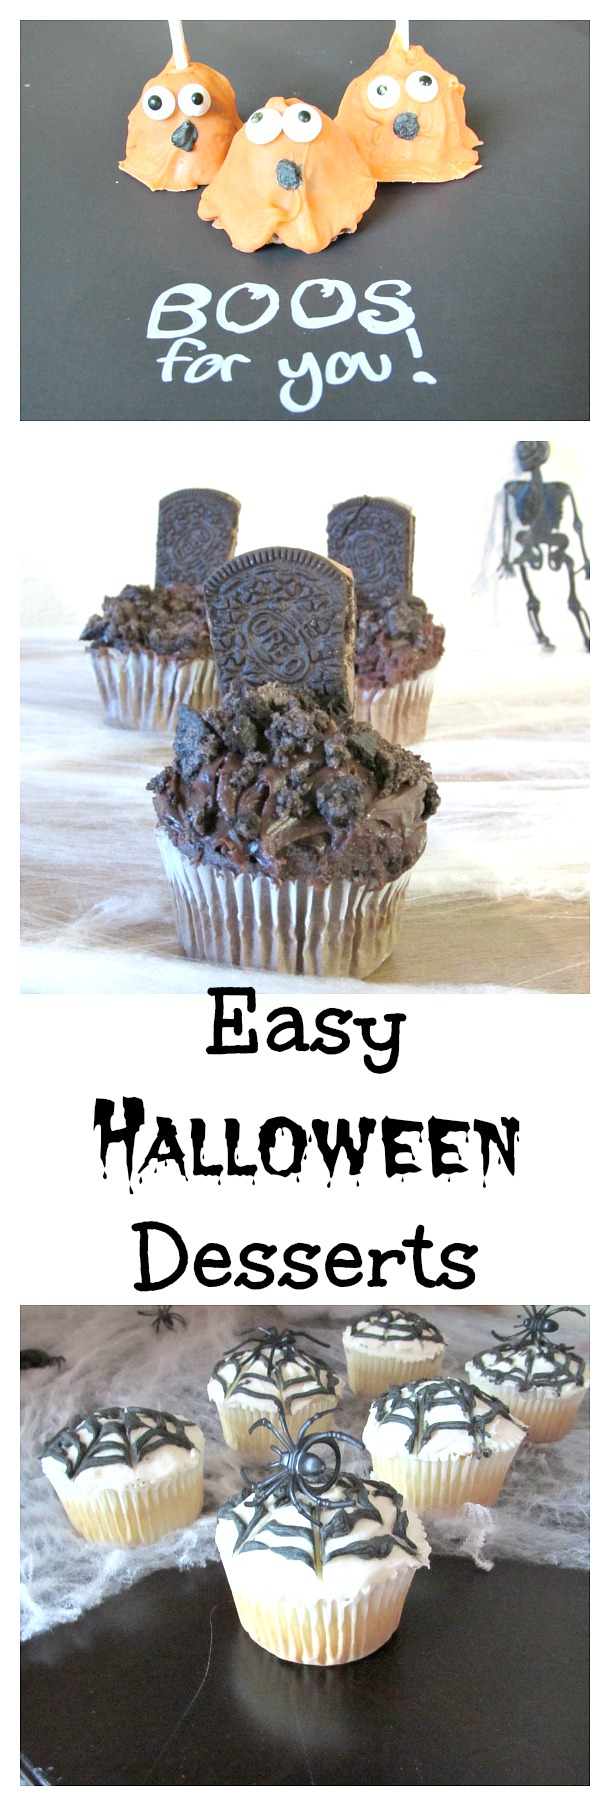 Easy Halloween Desserts! Graveyard cupcakes, ghost pops, spiderweb cupcakes and more